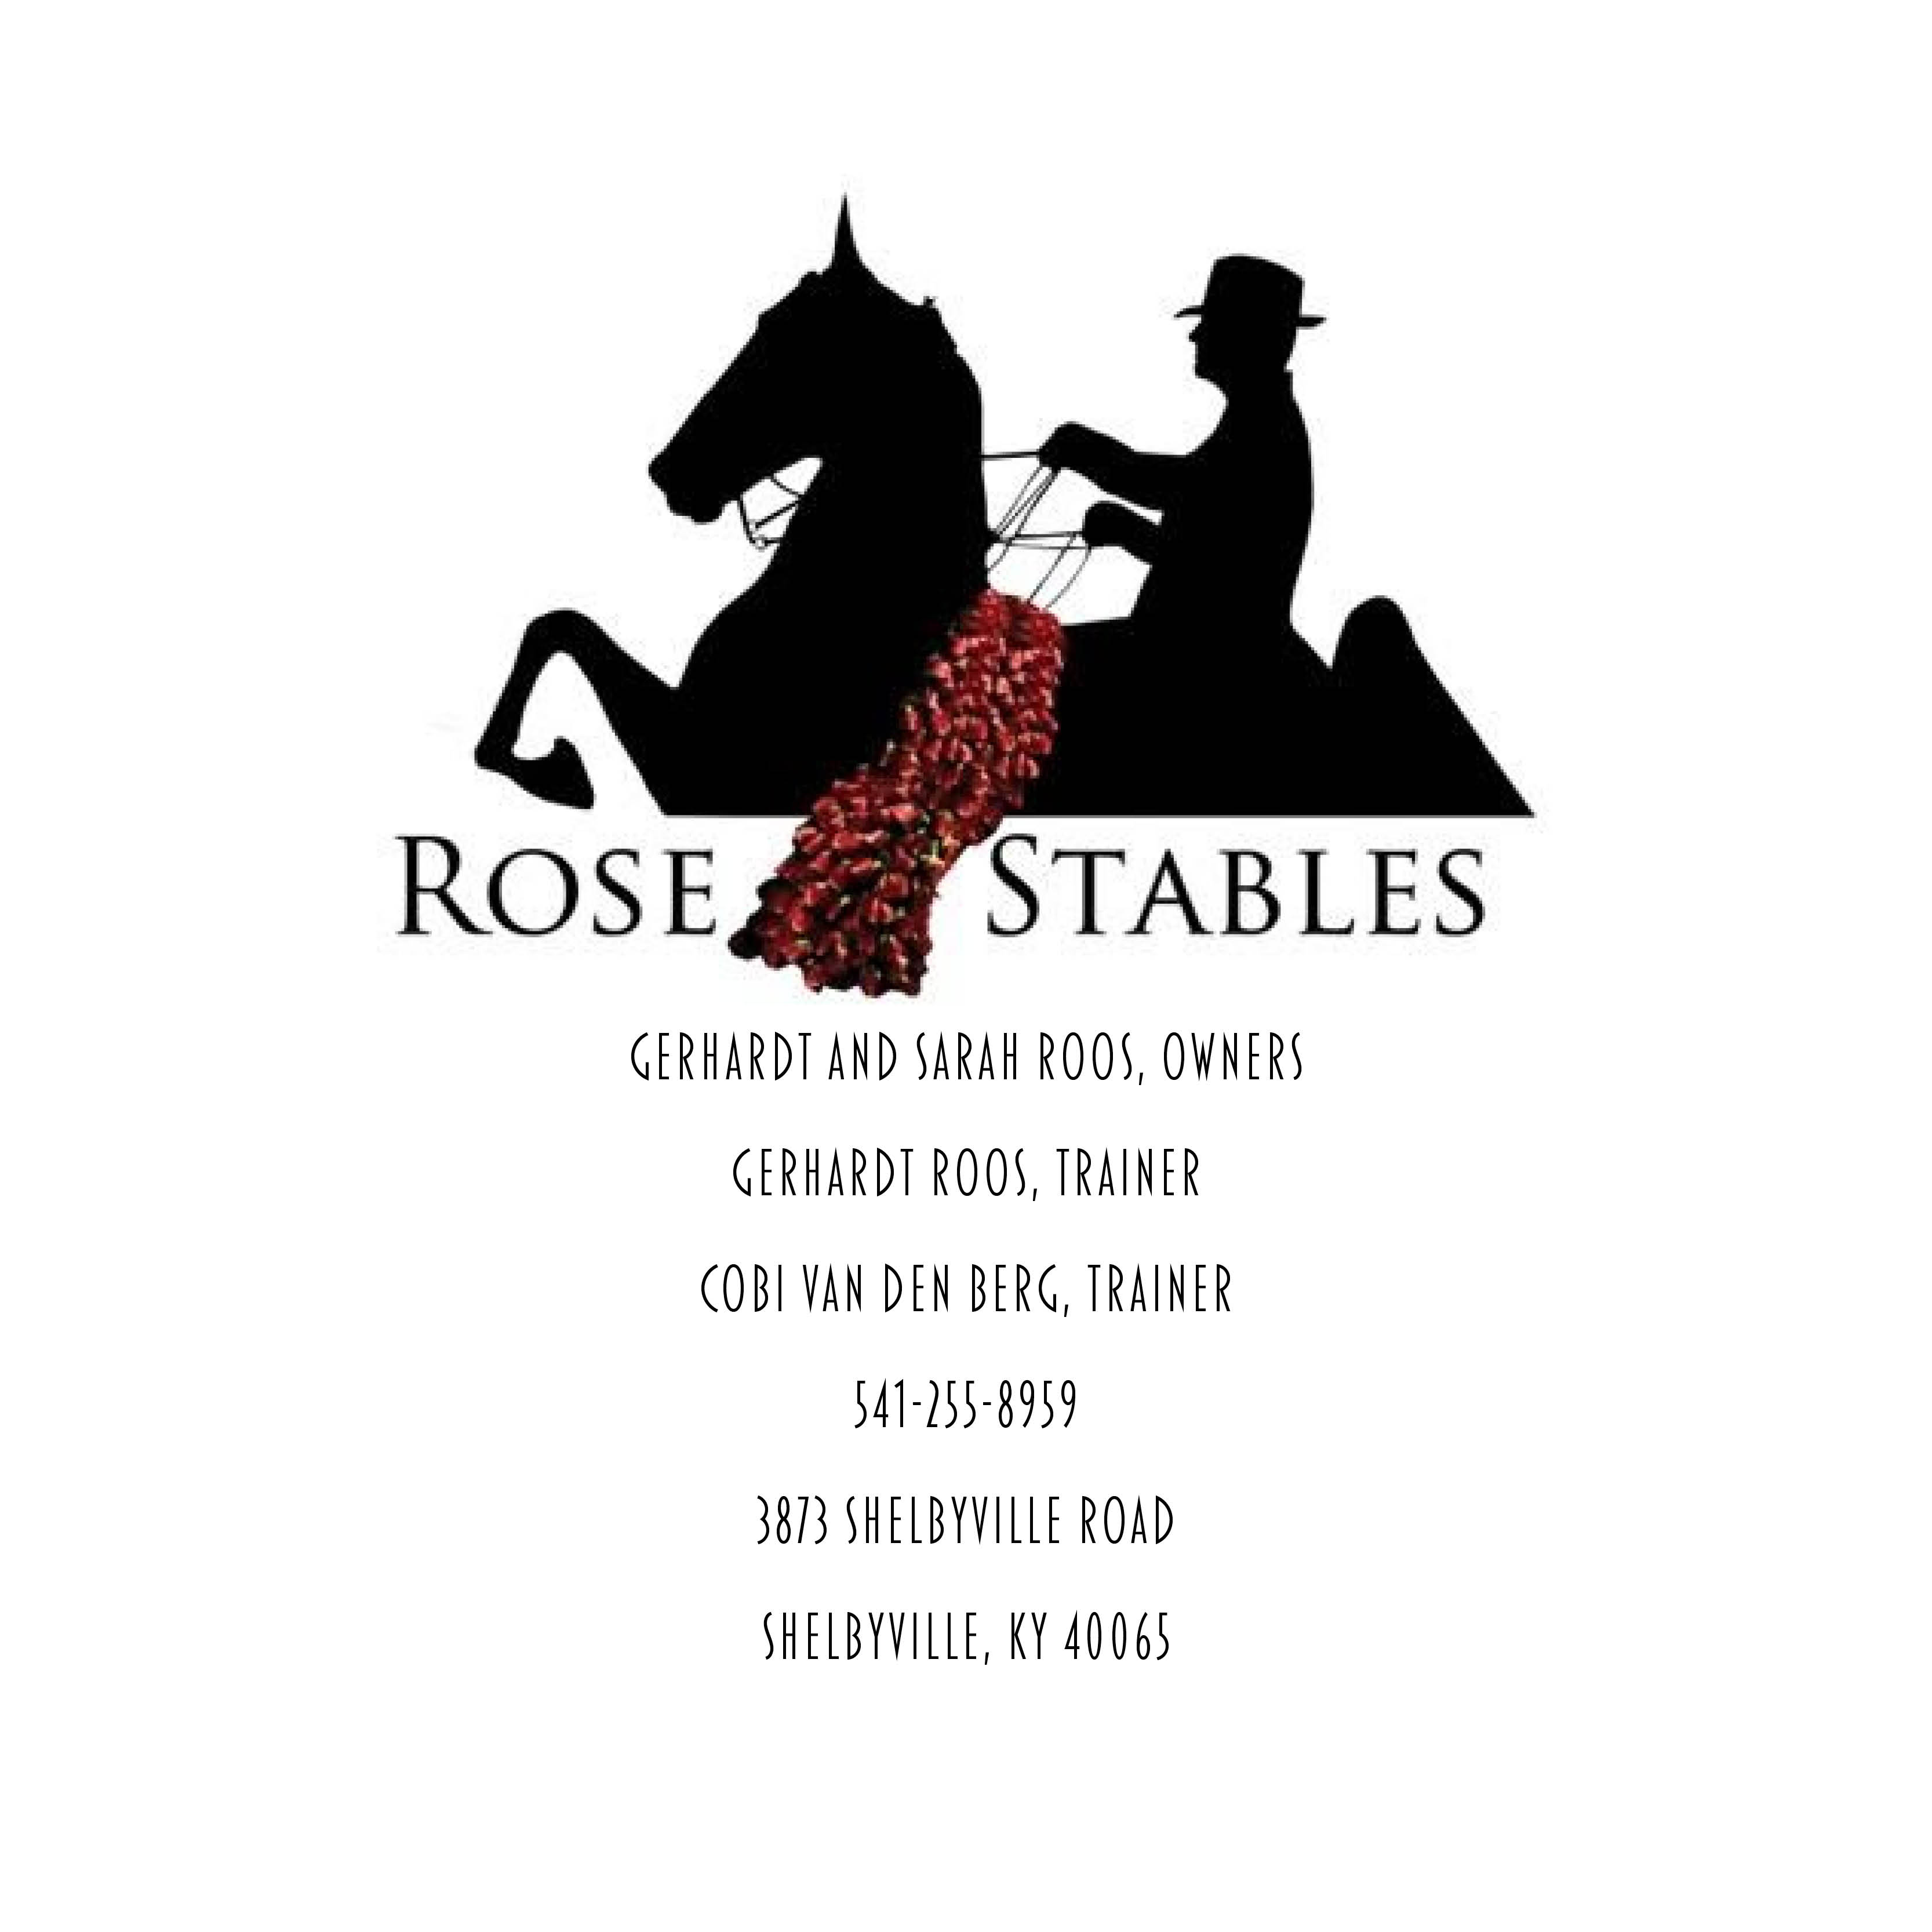 Rose Stables banner ad